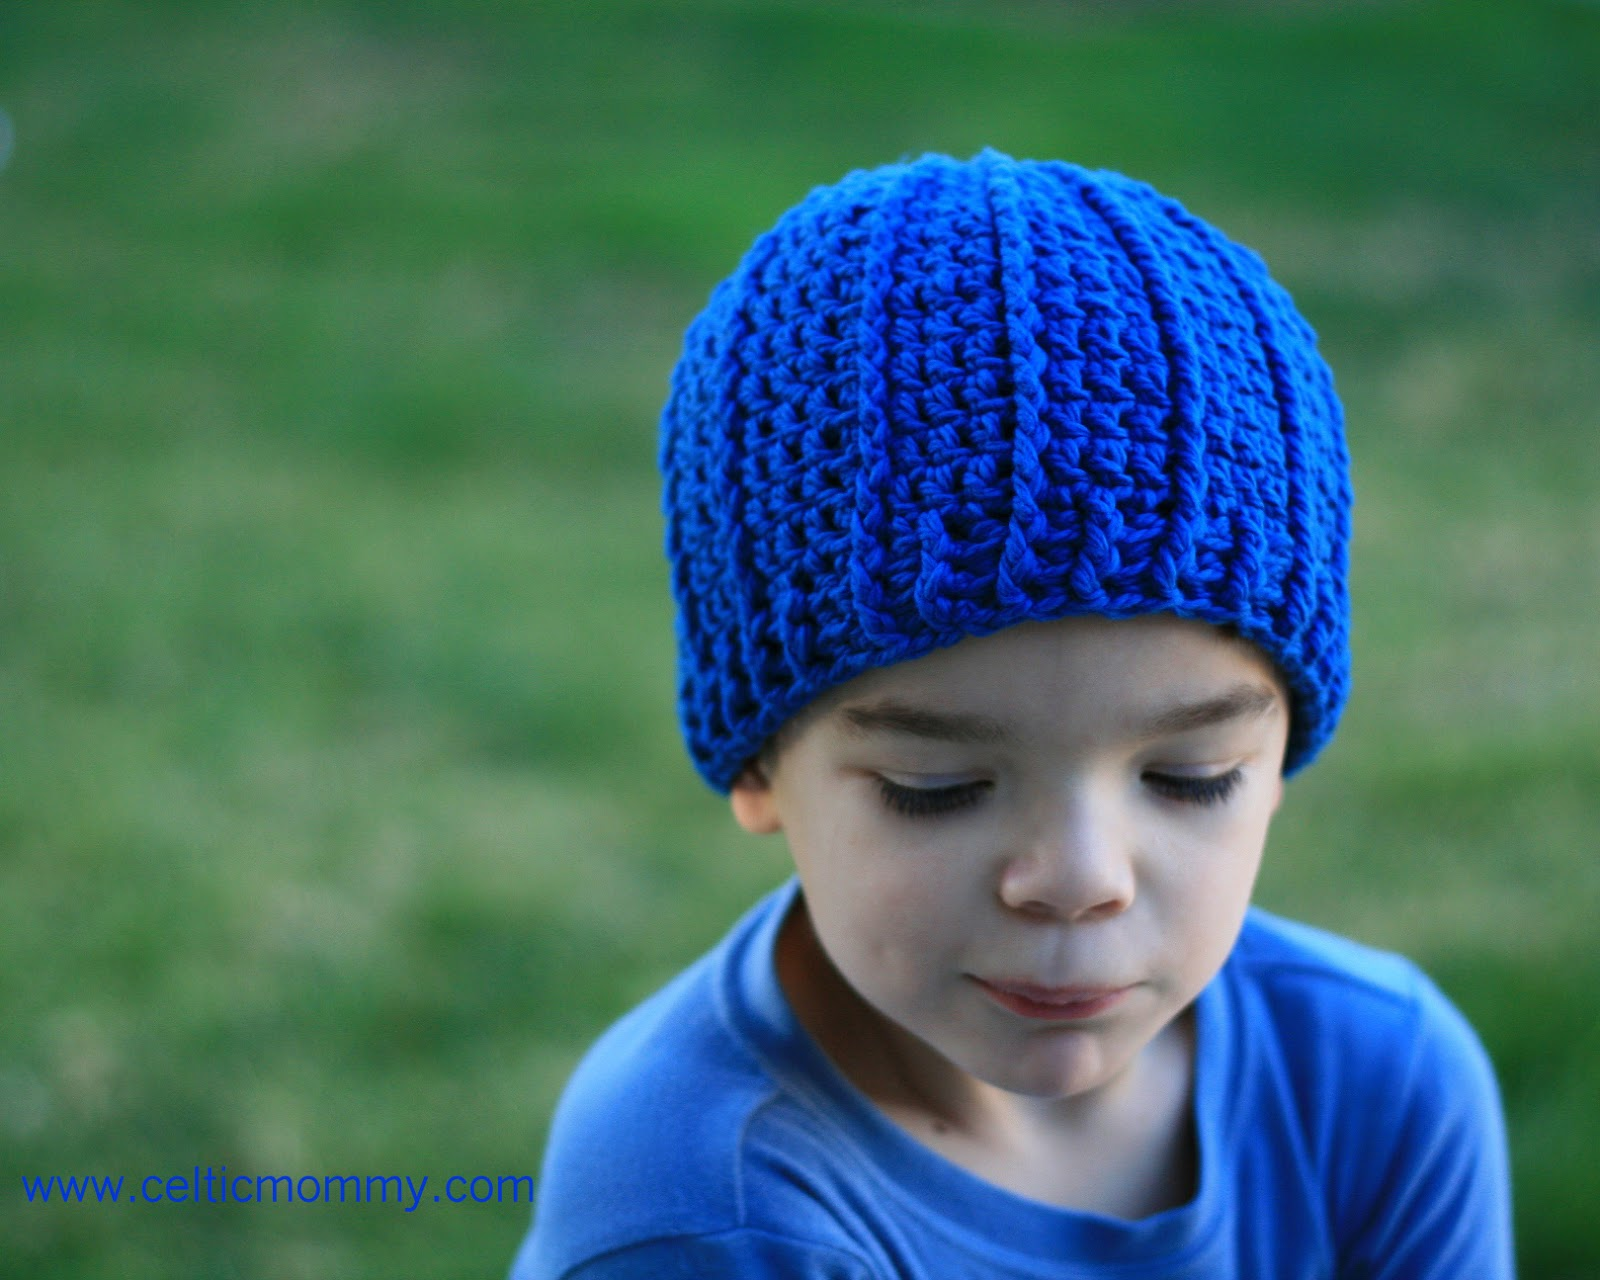 Crochet Patterns Free Childrens Hats : CelticMommy: Free crochet pattern: Rib wrapped cap for ...